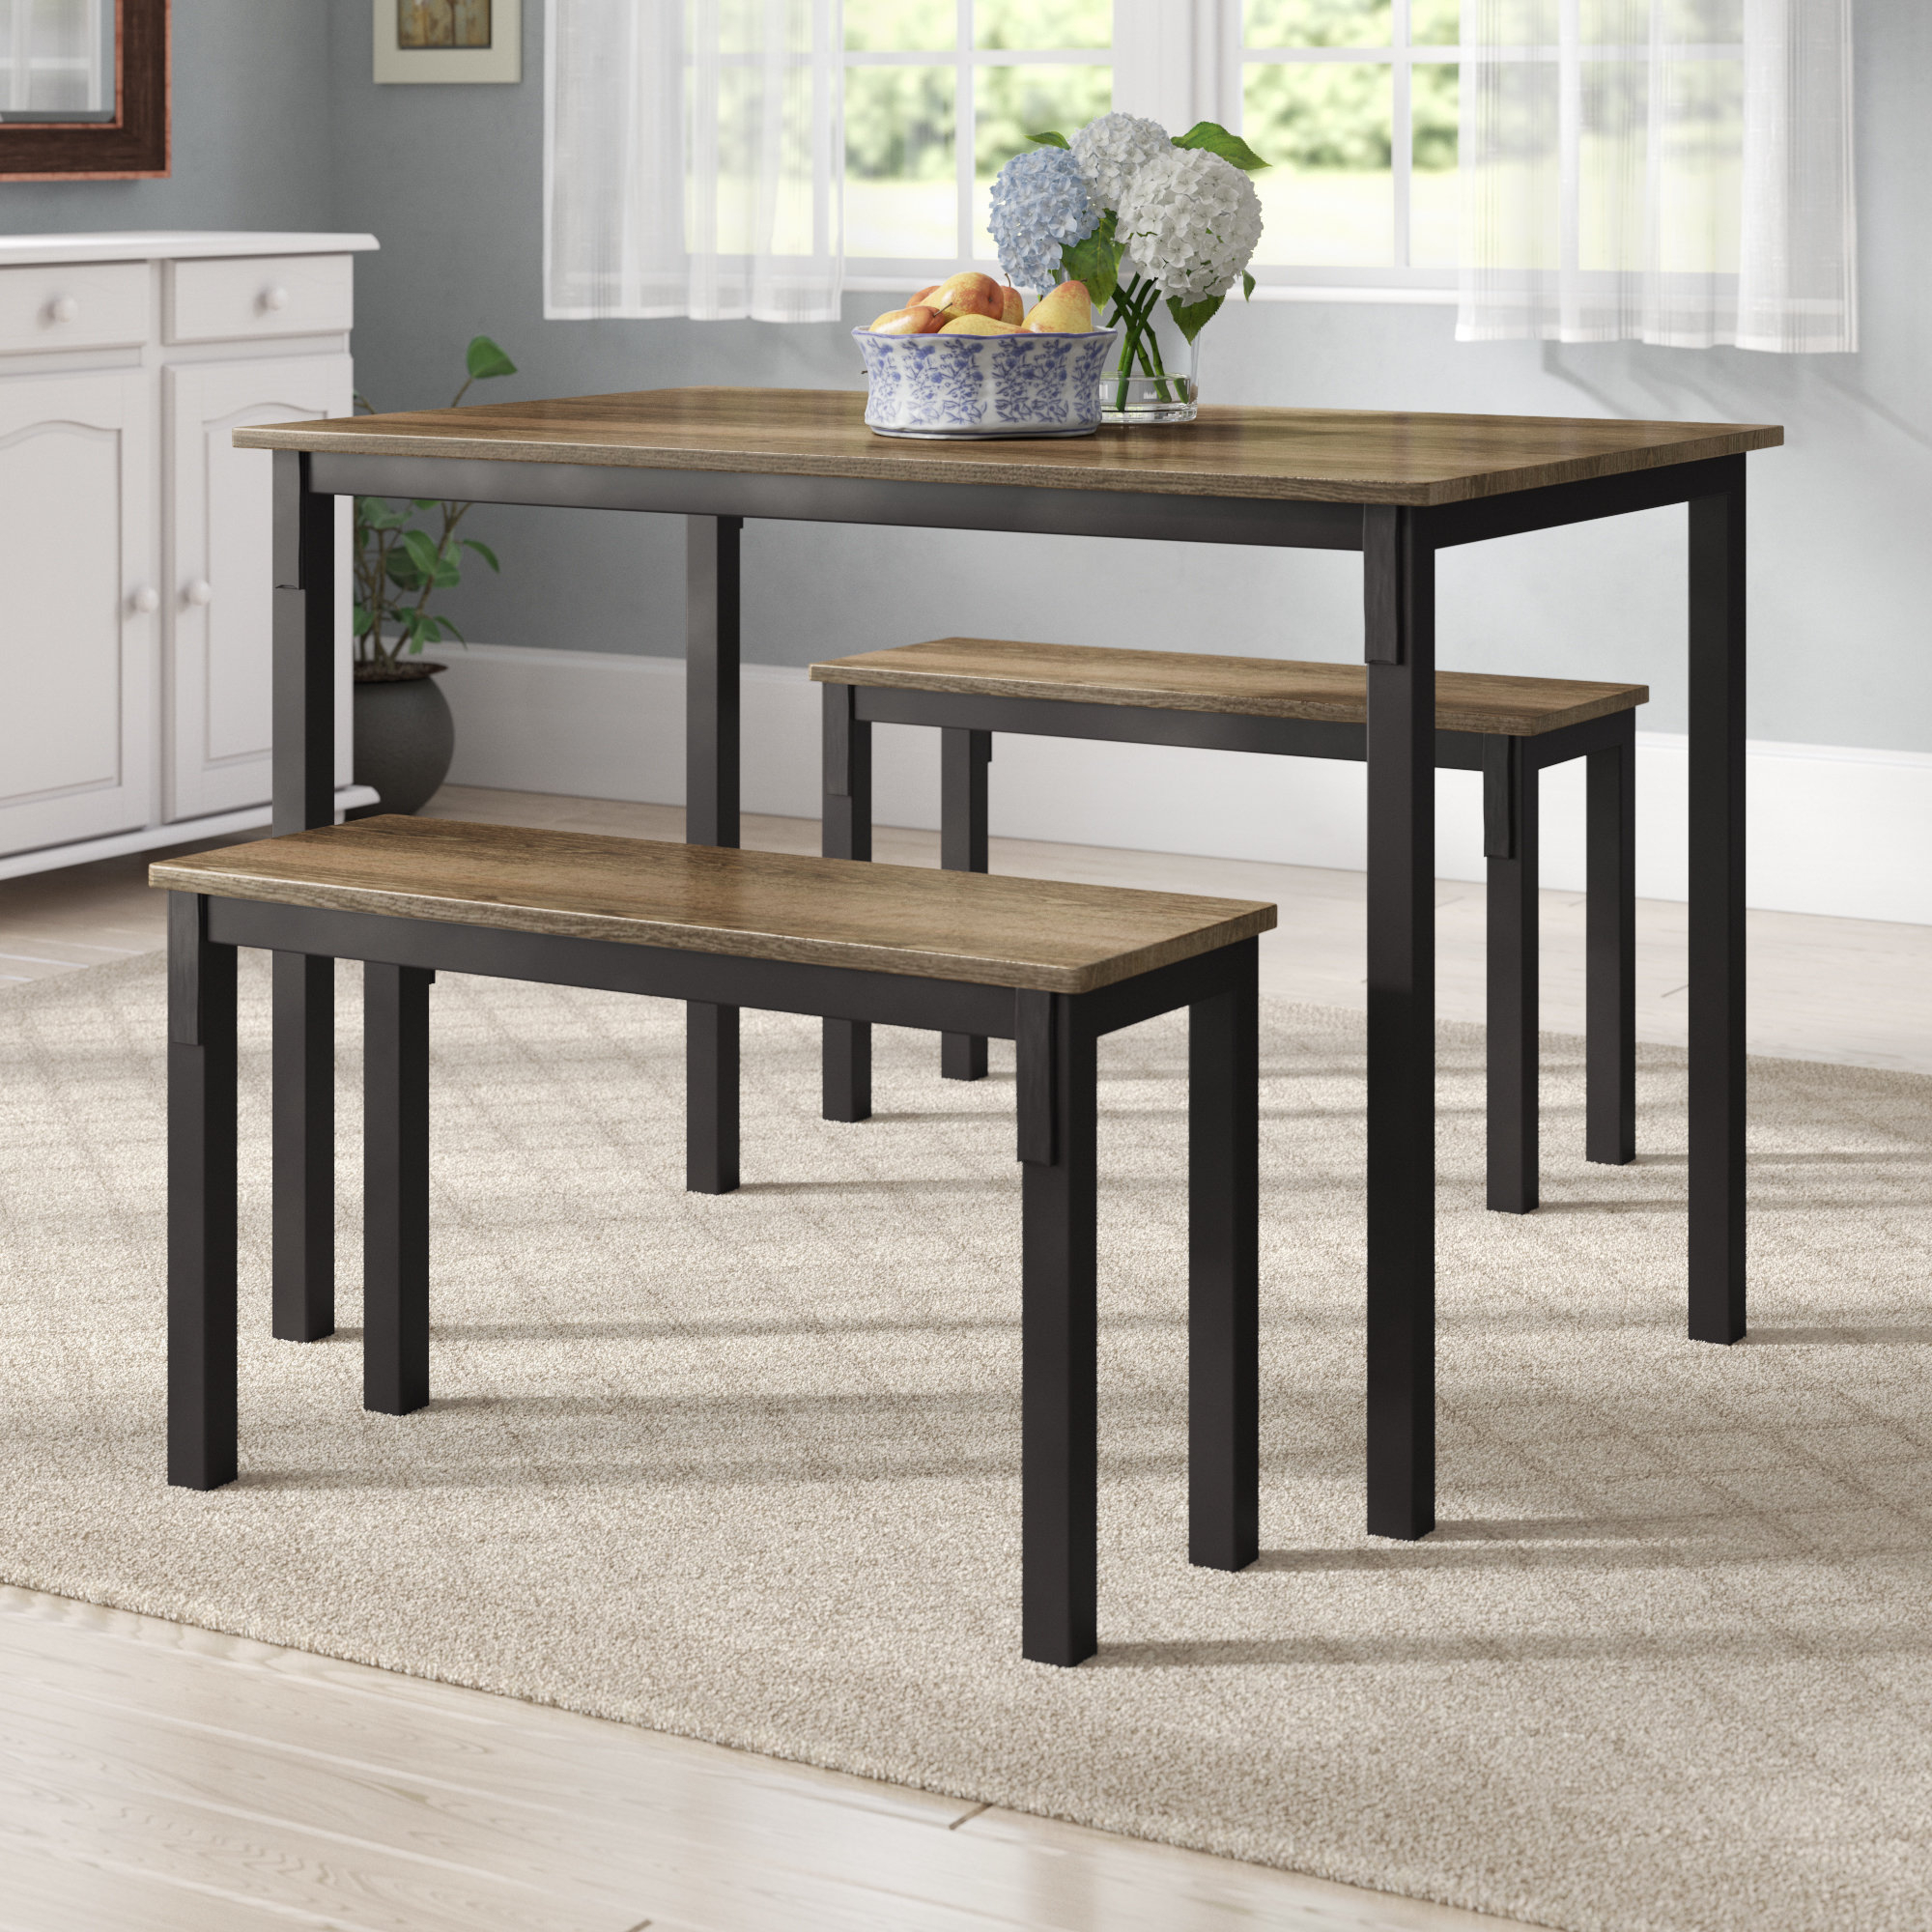 Rossiter 3 Piece Dining Set Regarding Famous 3 Piece Dining Sets (Gallery 2 of 20)